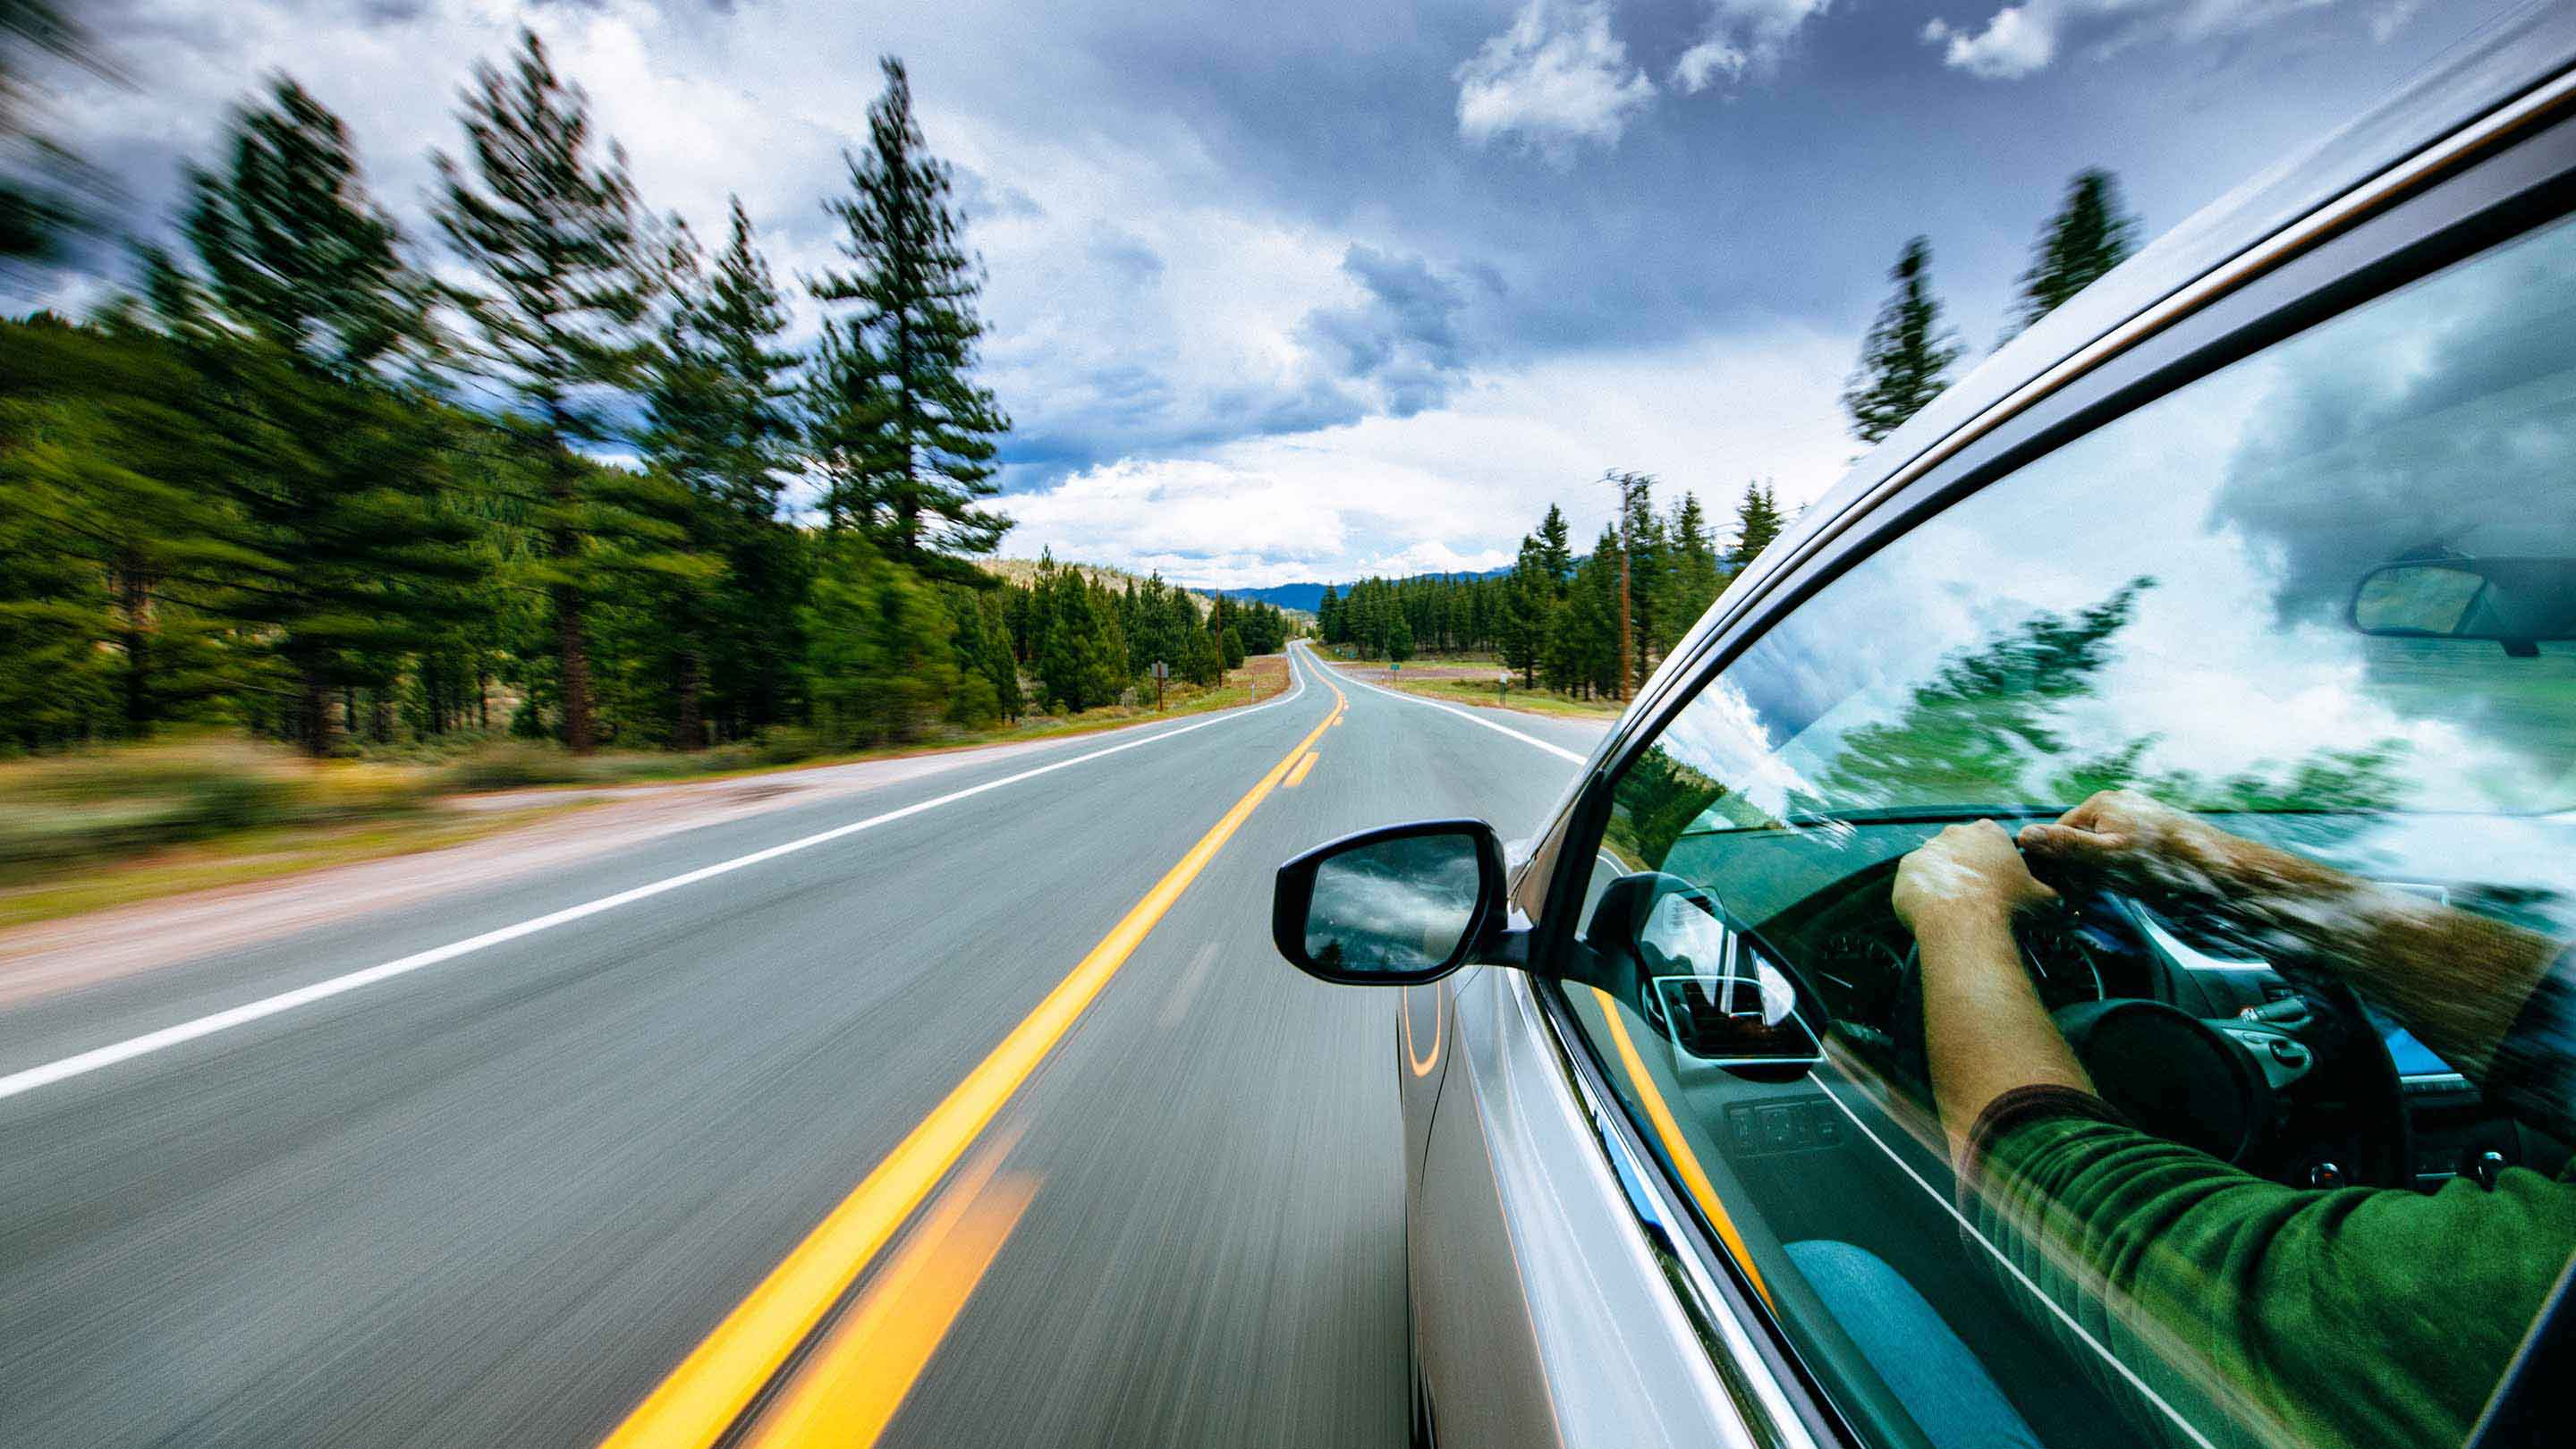 Photo of a person driving down the road in a silver car